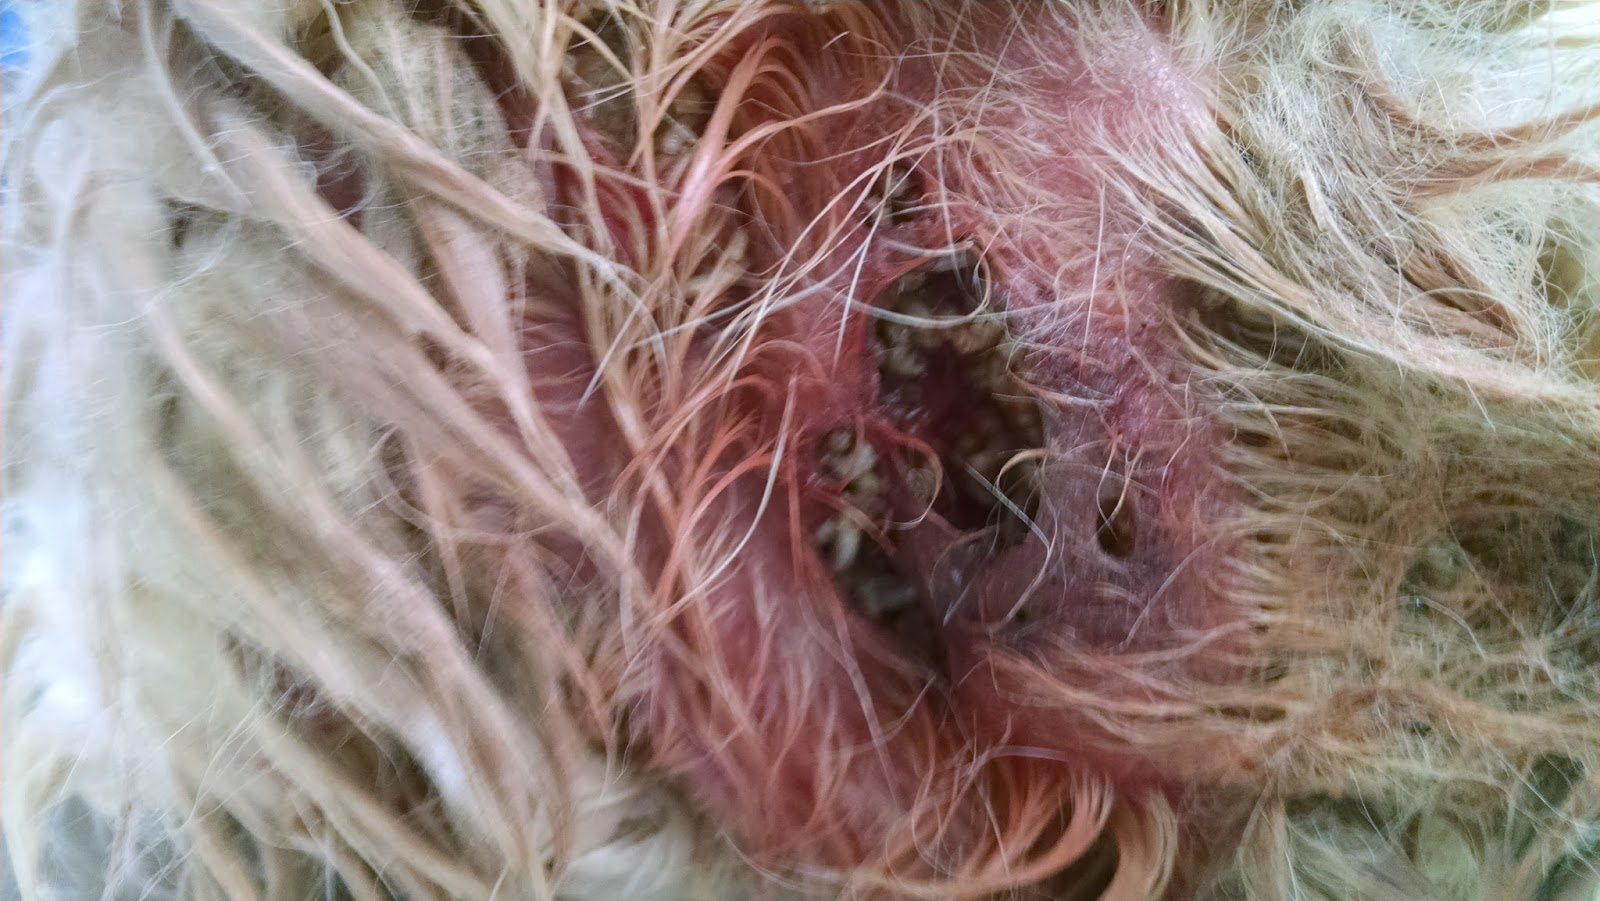 Black Mango Bed Heads A Vet 39s Guide To Life Maggots Wounds And Summertime